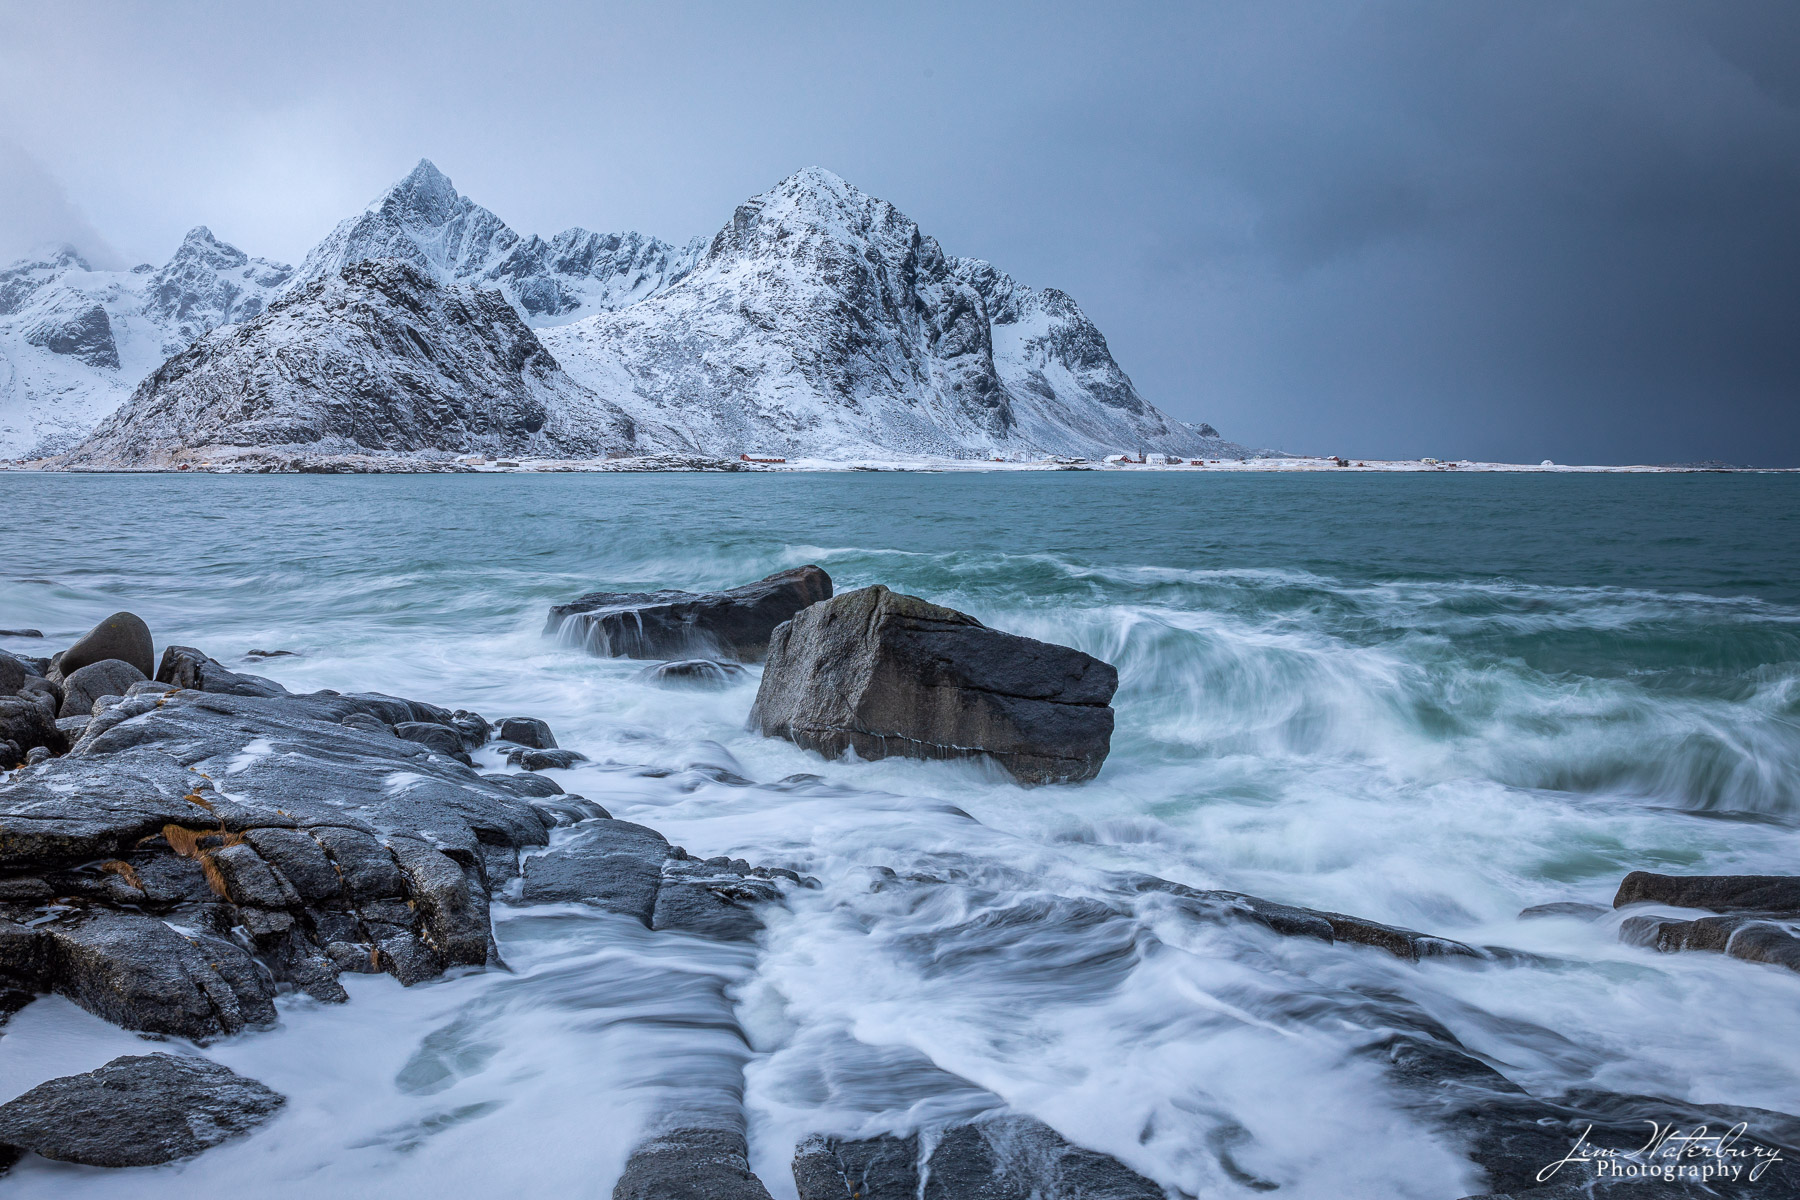 seascape, rocks, mountains, surf, winter, snow, Lofoten, Norway, photo